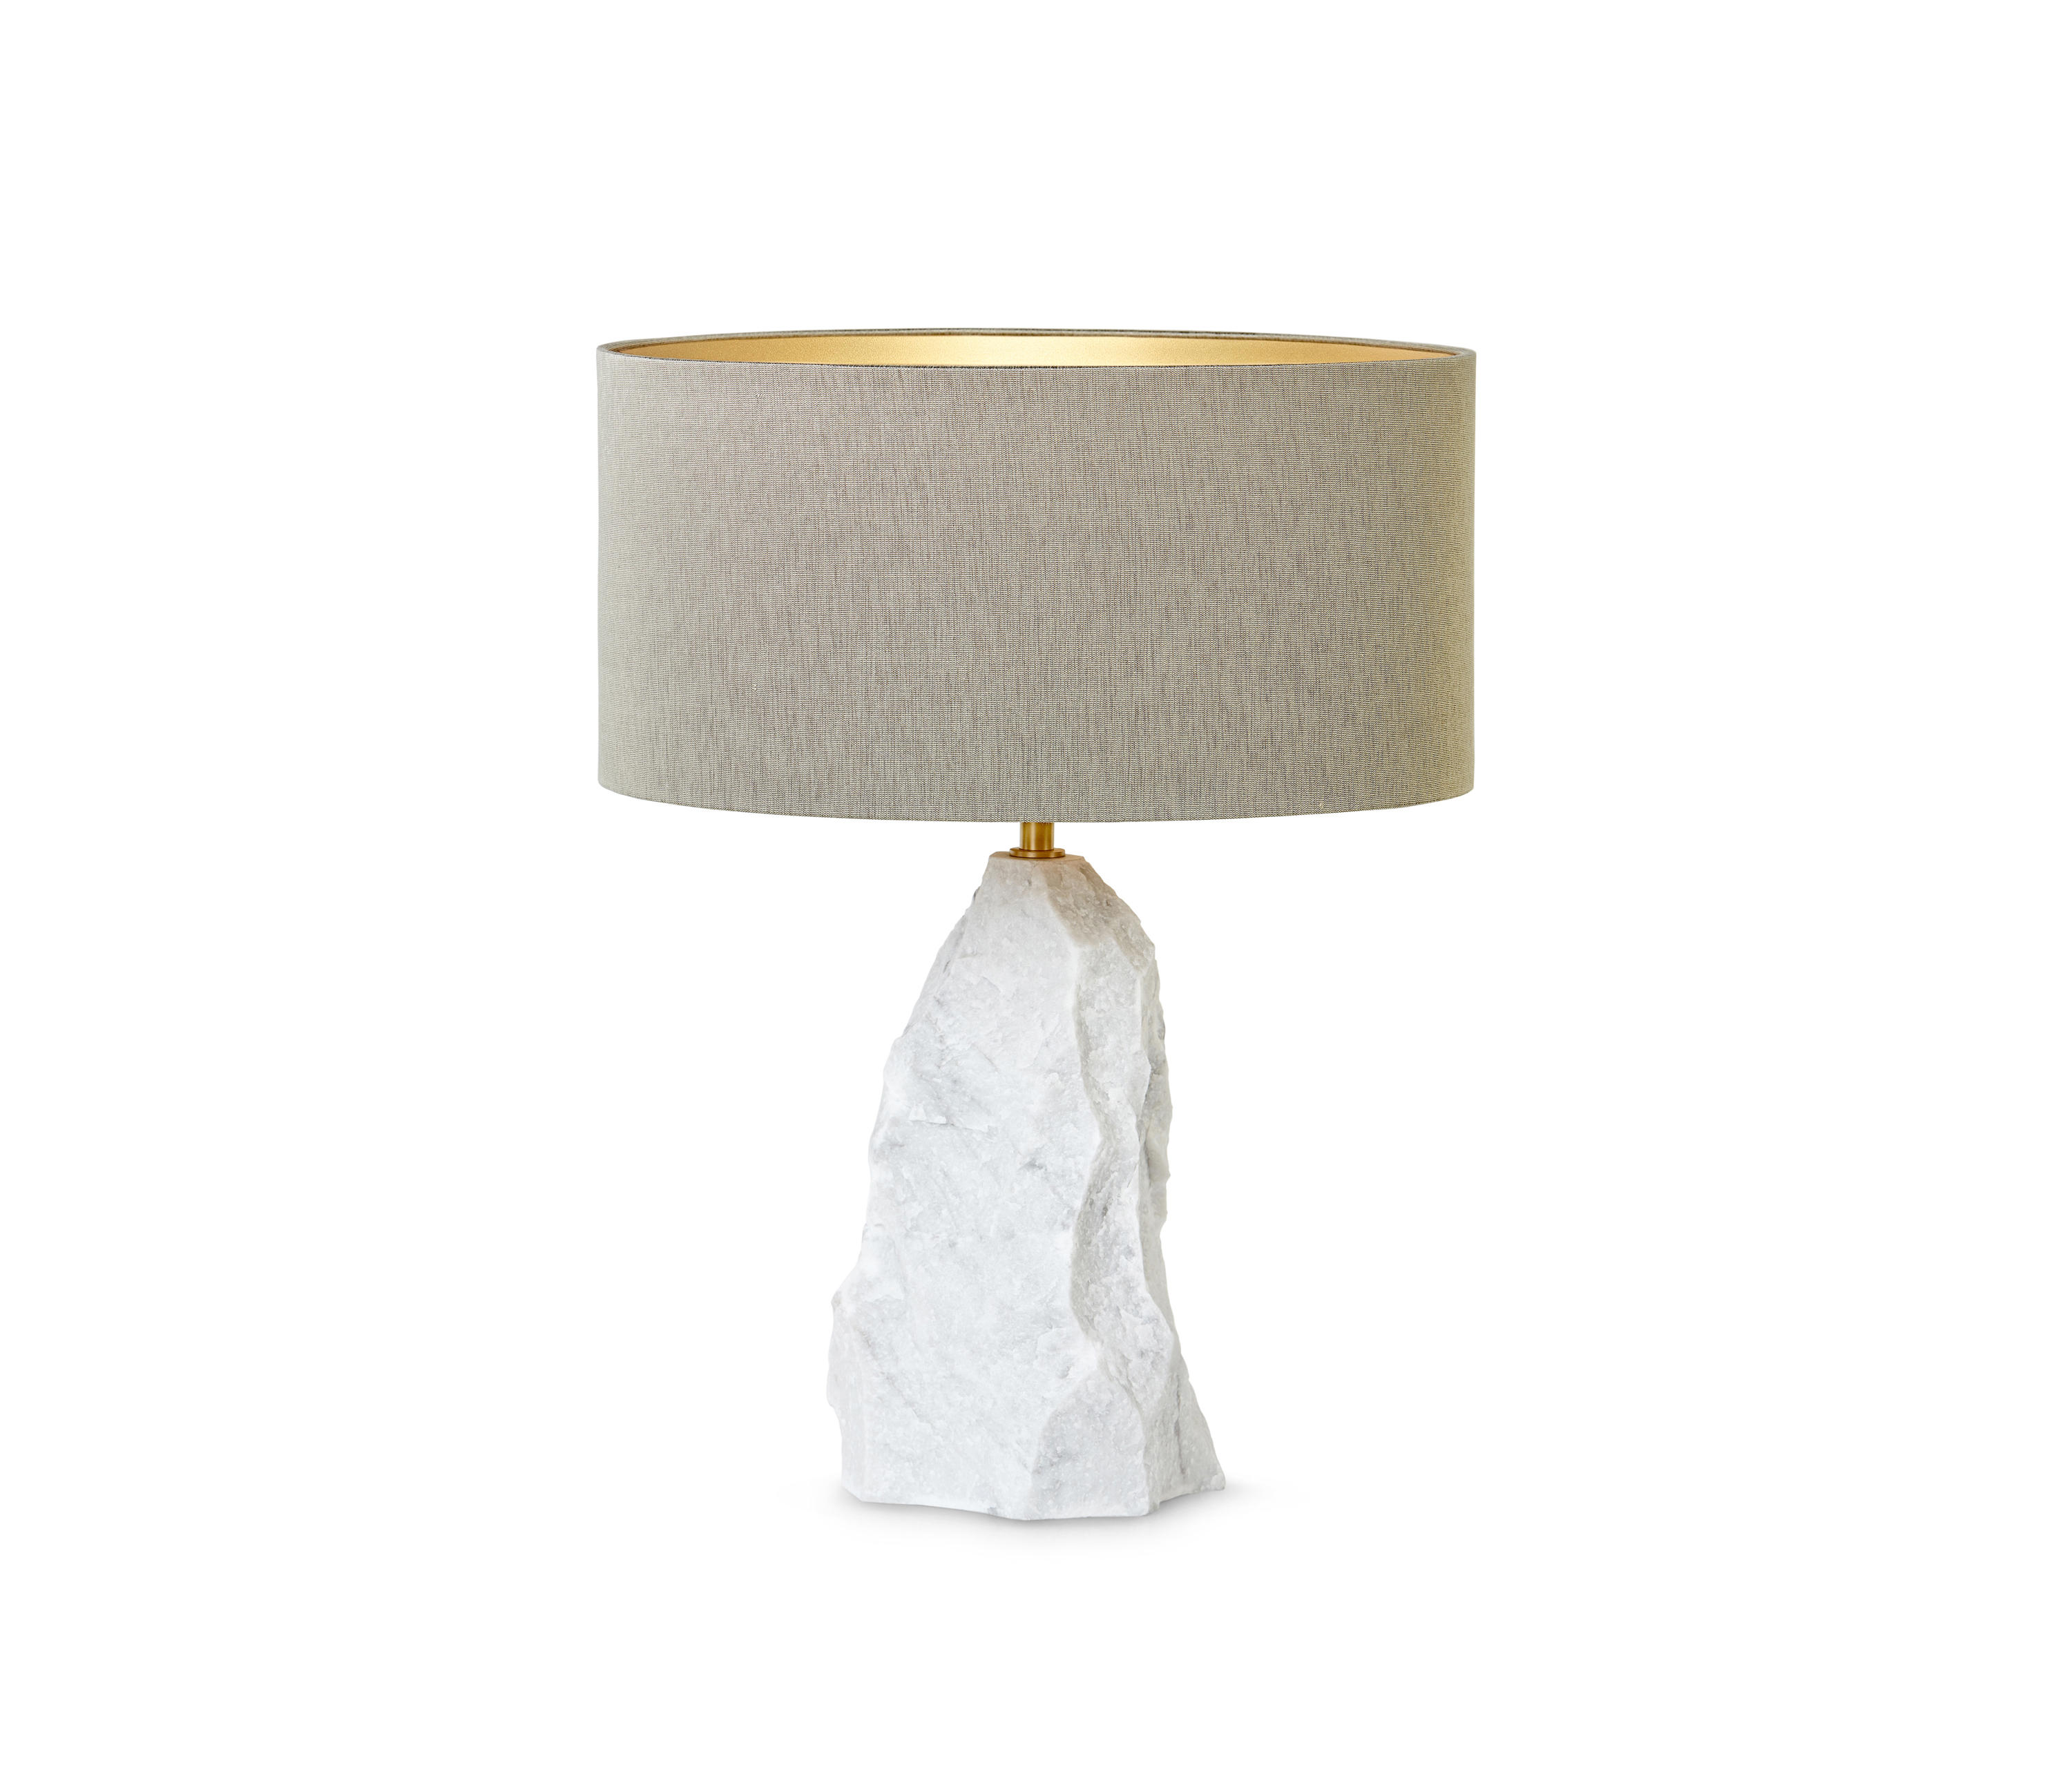 PICO TABLE LAMP General Lighting From GINGER JAGGER